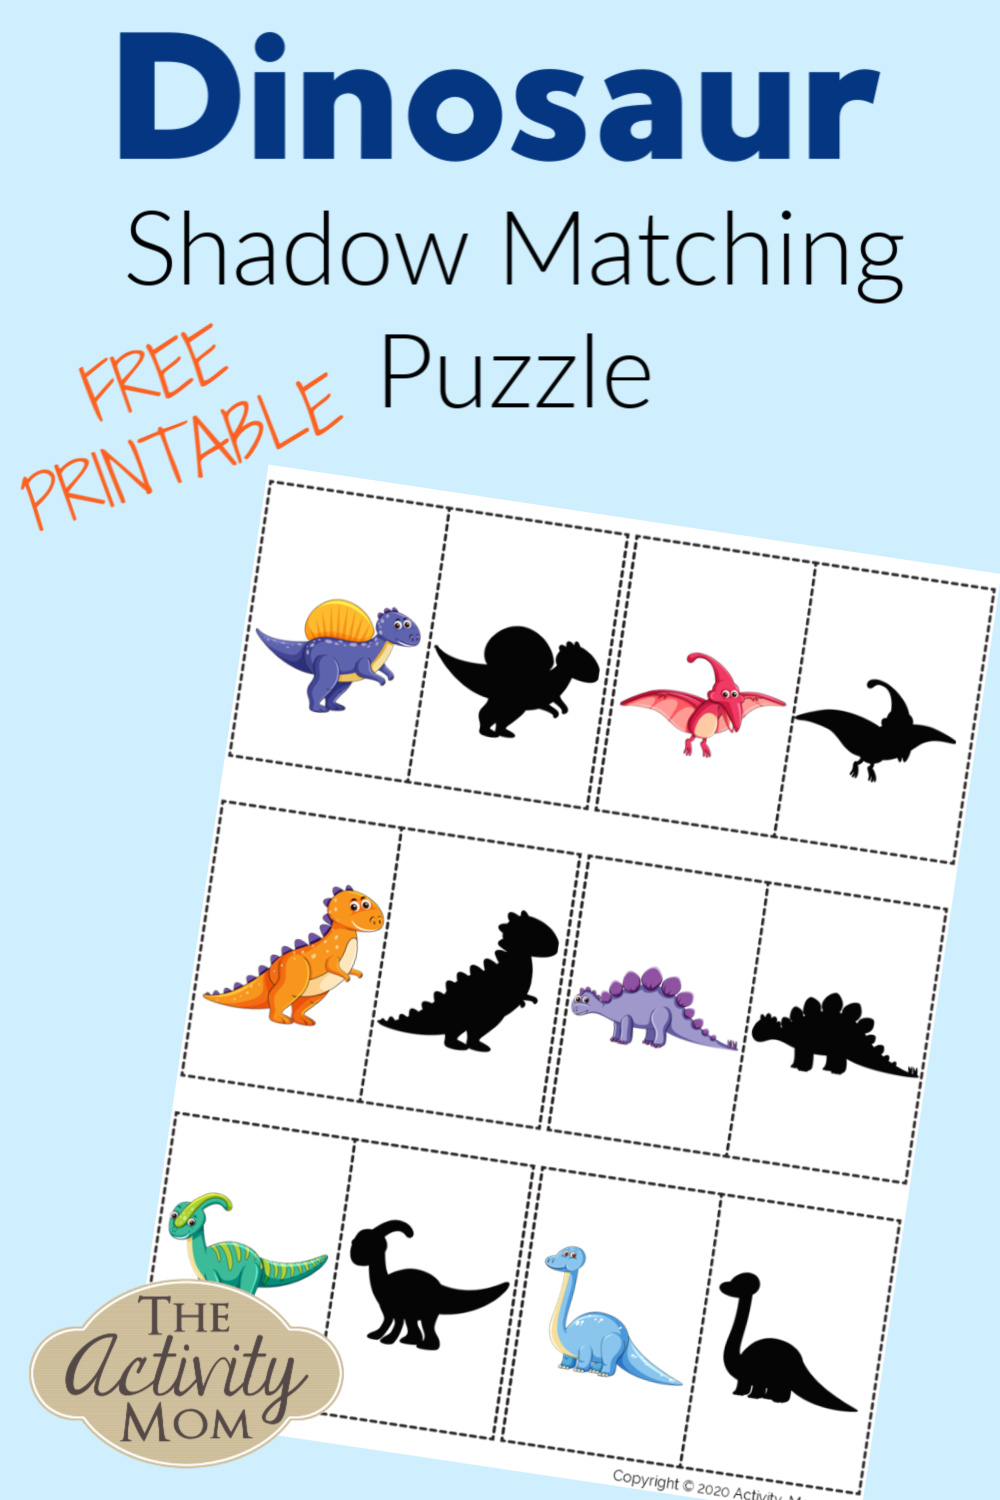 Dinosaur Shadow Matching Puzzle